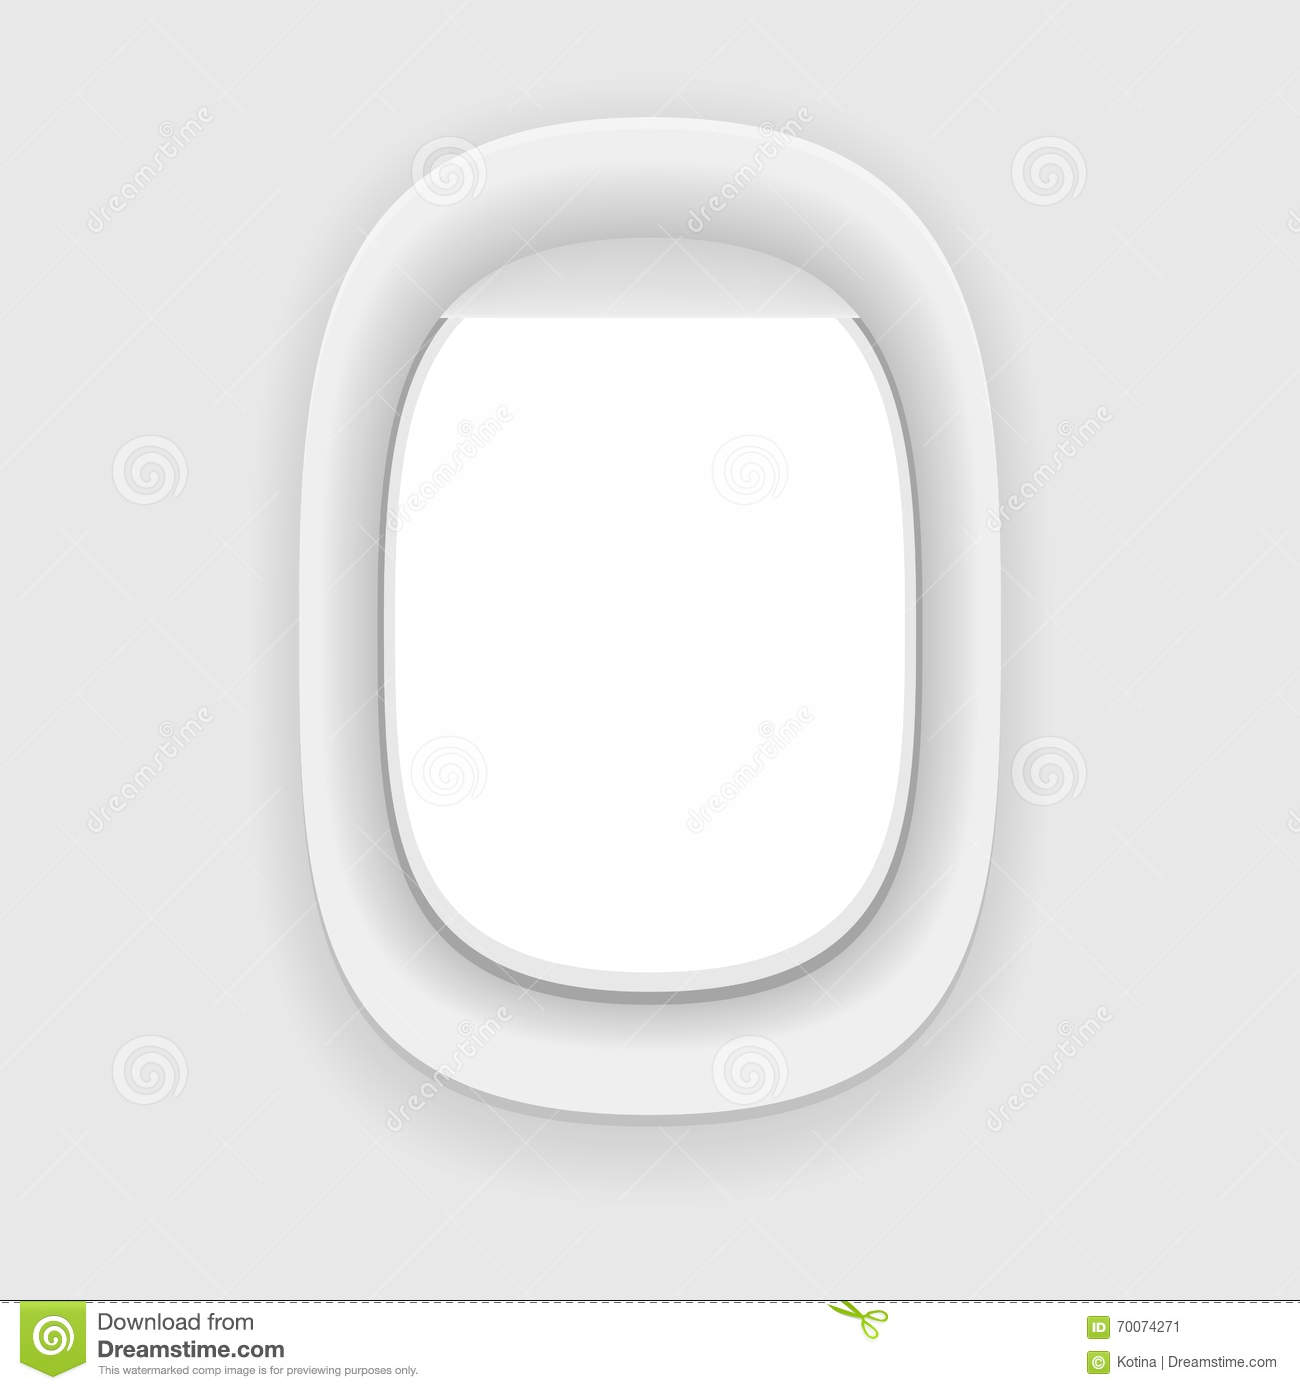 Airplane window clipart #11